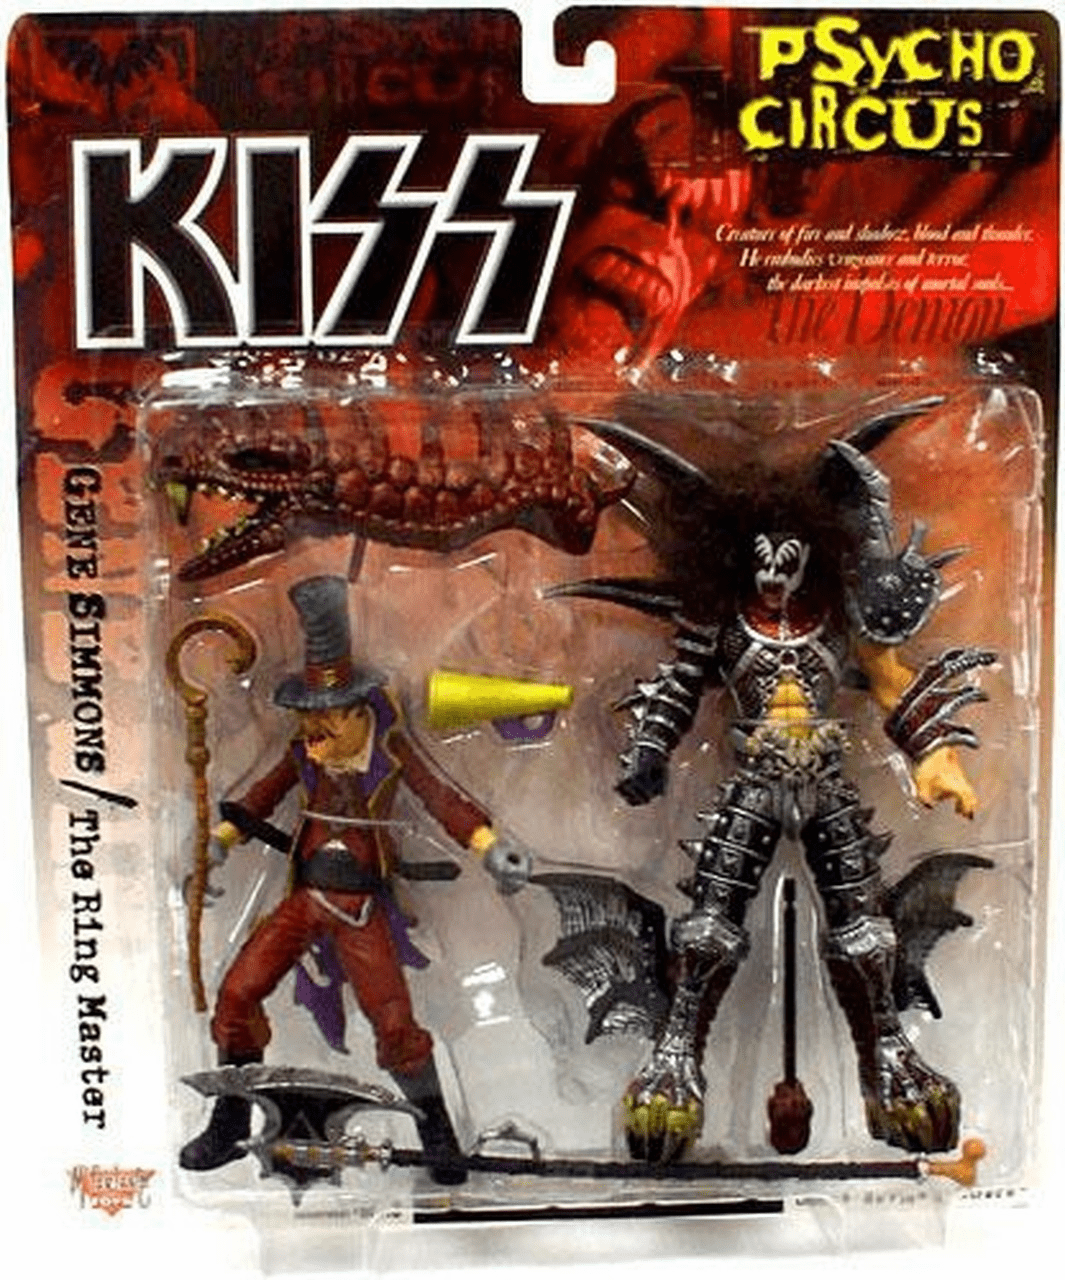 McFarlane KISS Psycho Circus Gene Simmons & The Ring Master Set